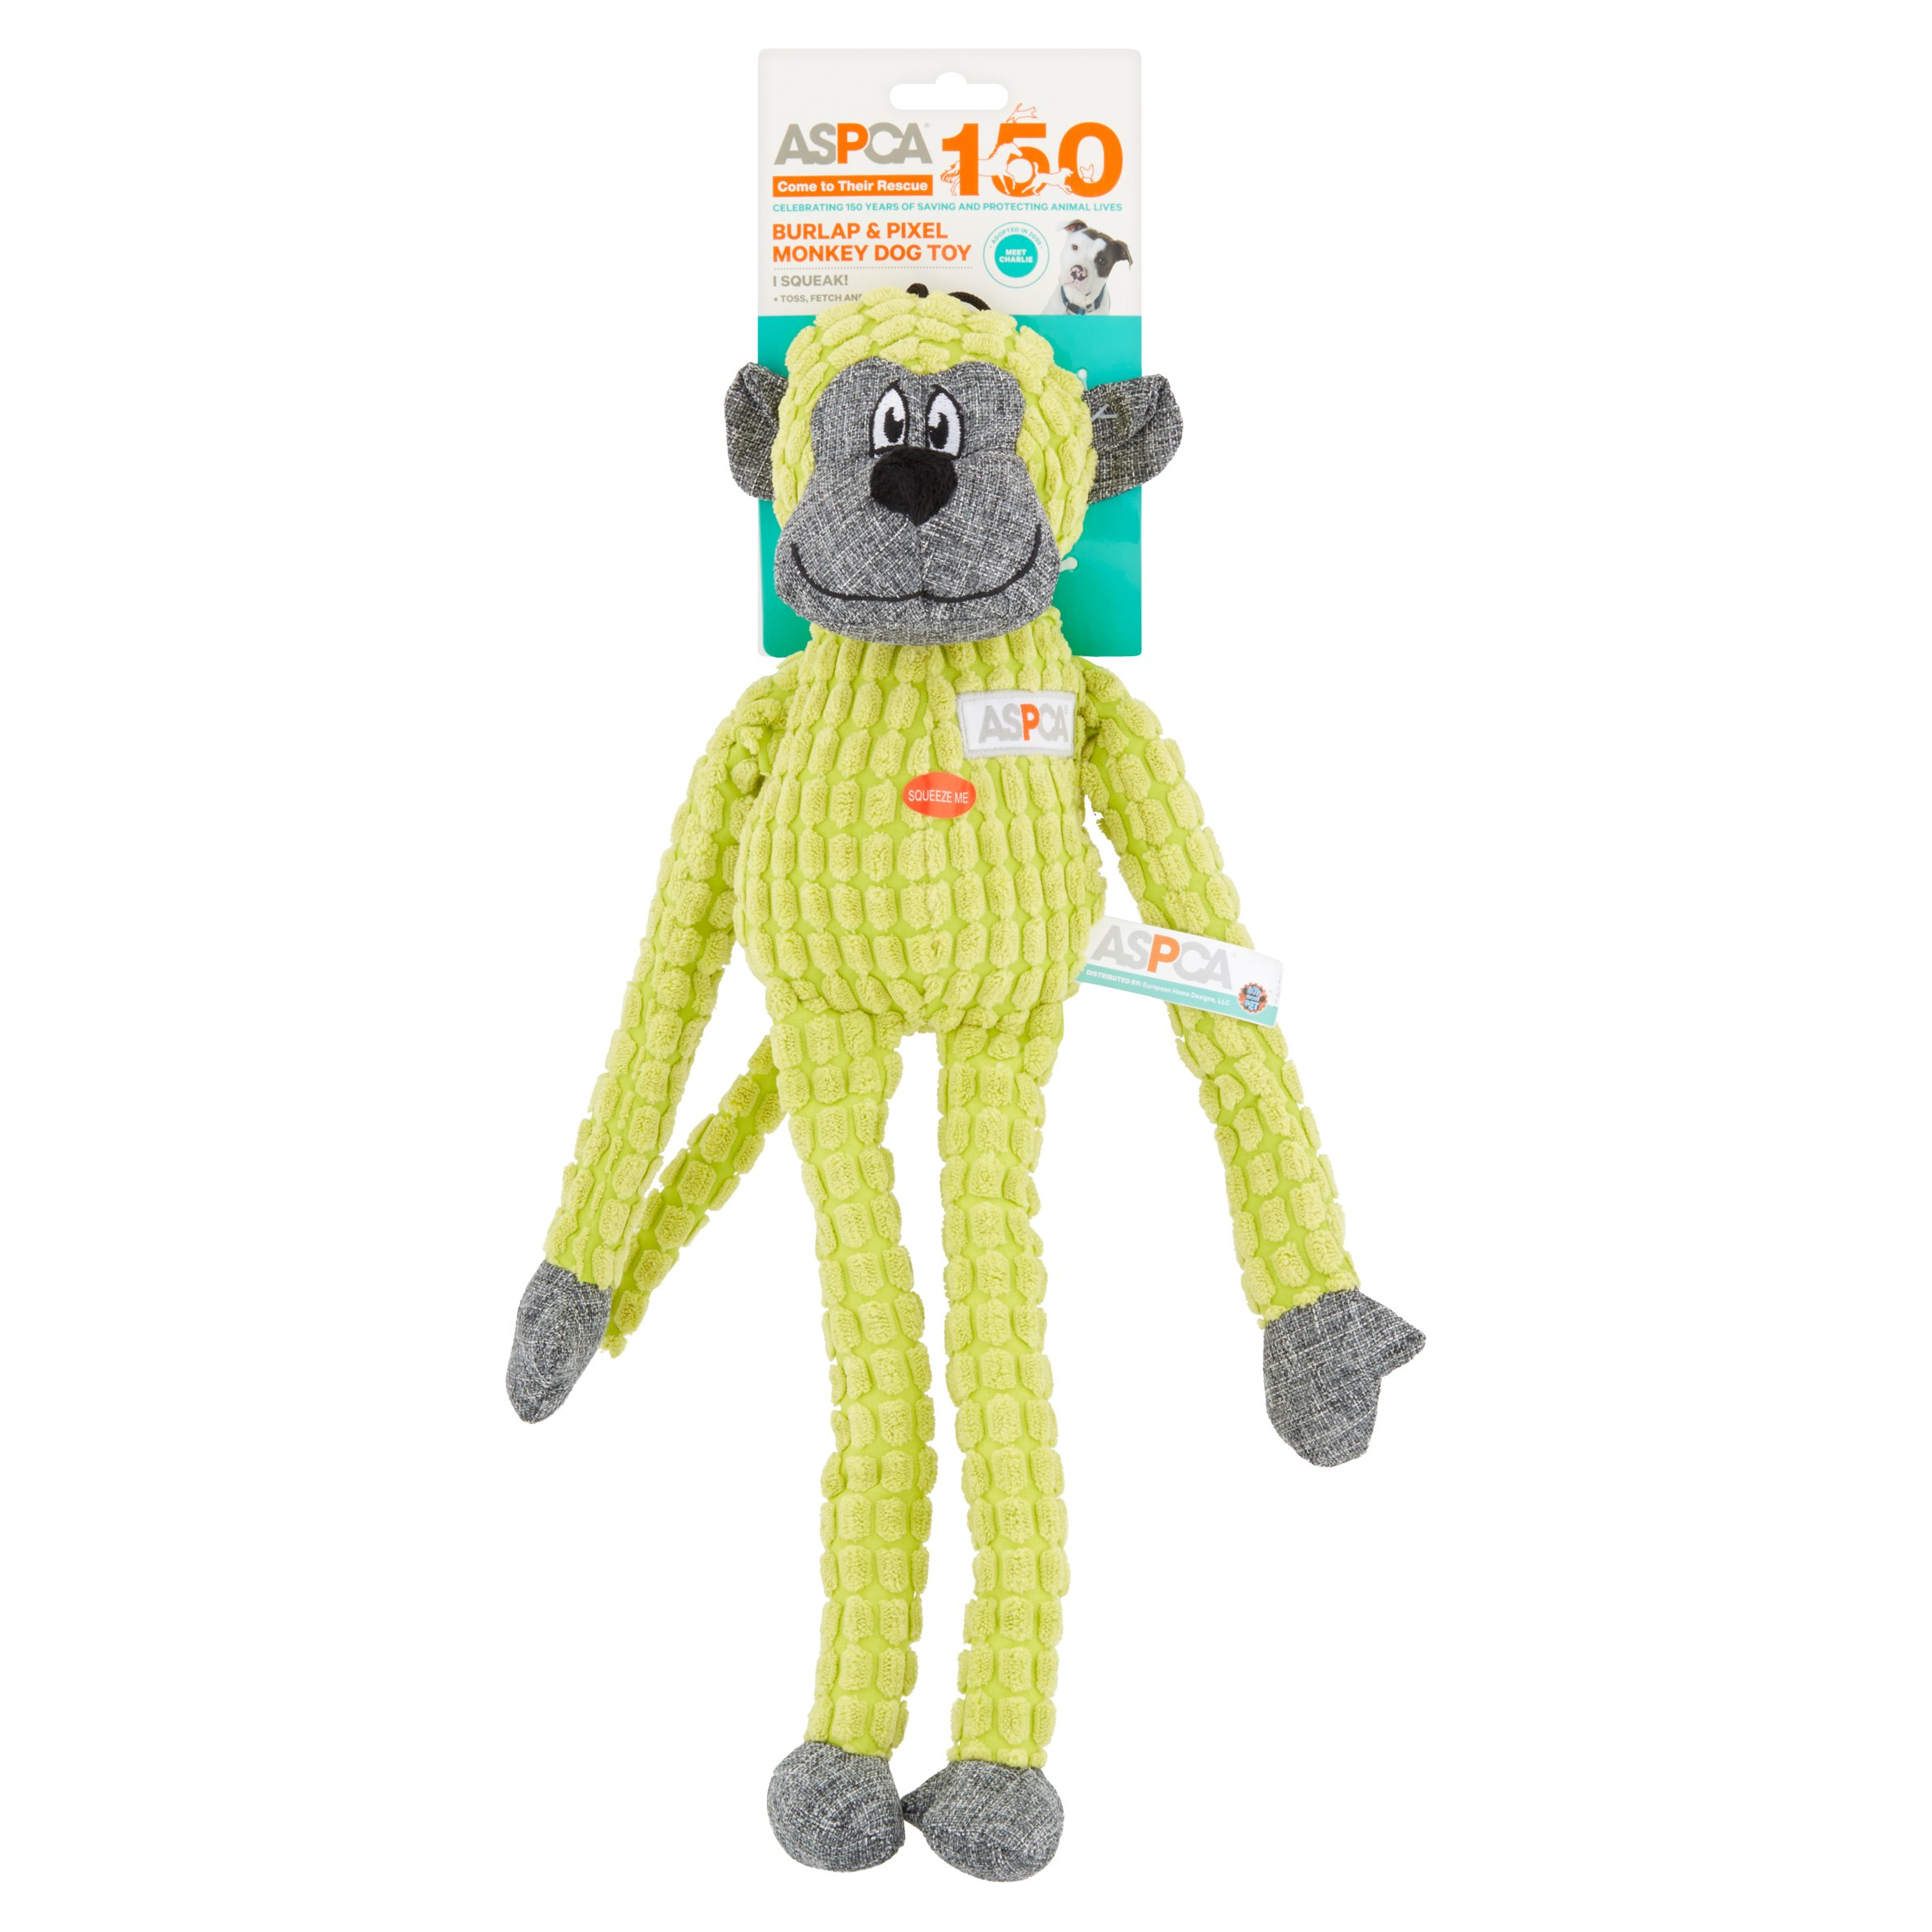 ASPCA Burlap & Pixel Monkey Dog Toy by European Home Designs, LLC